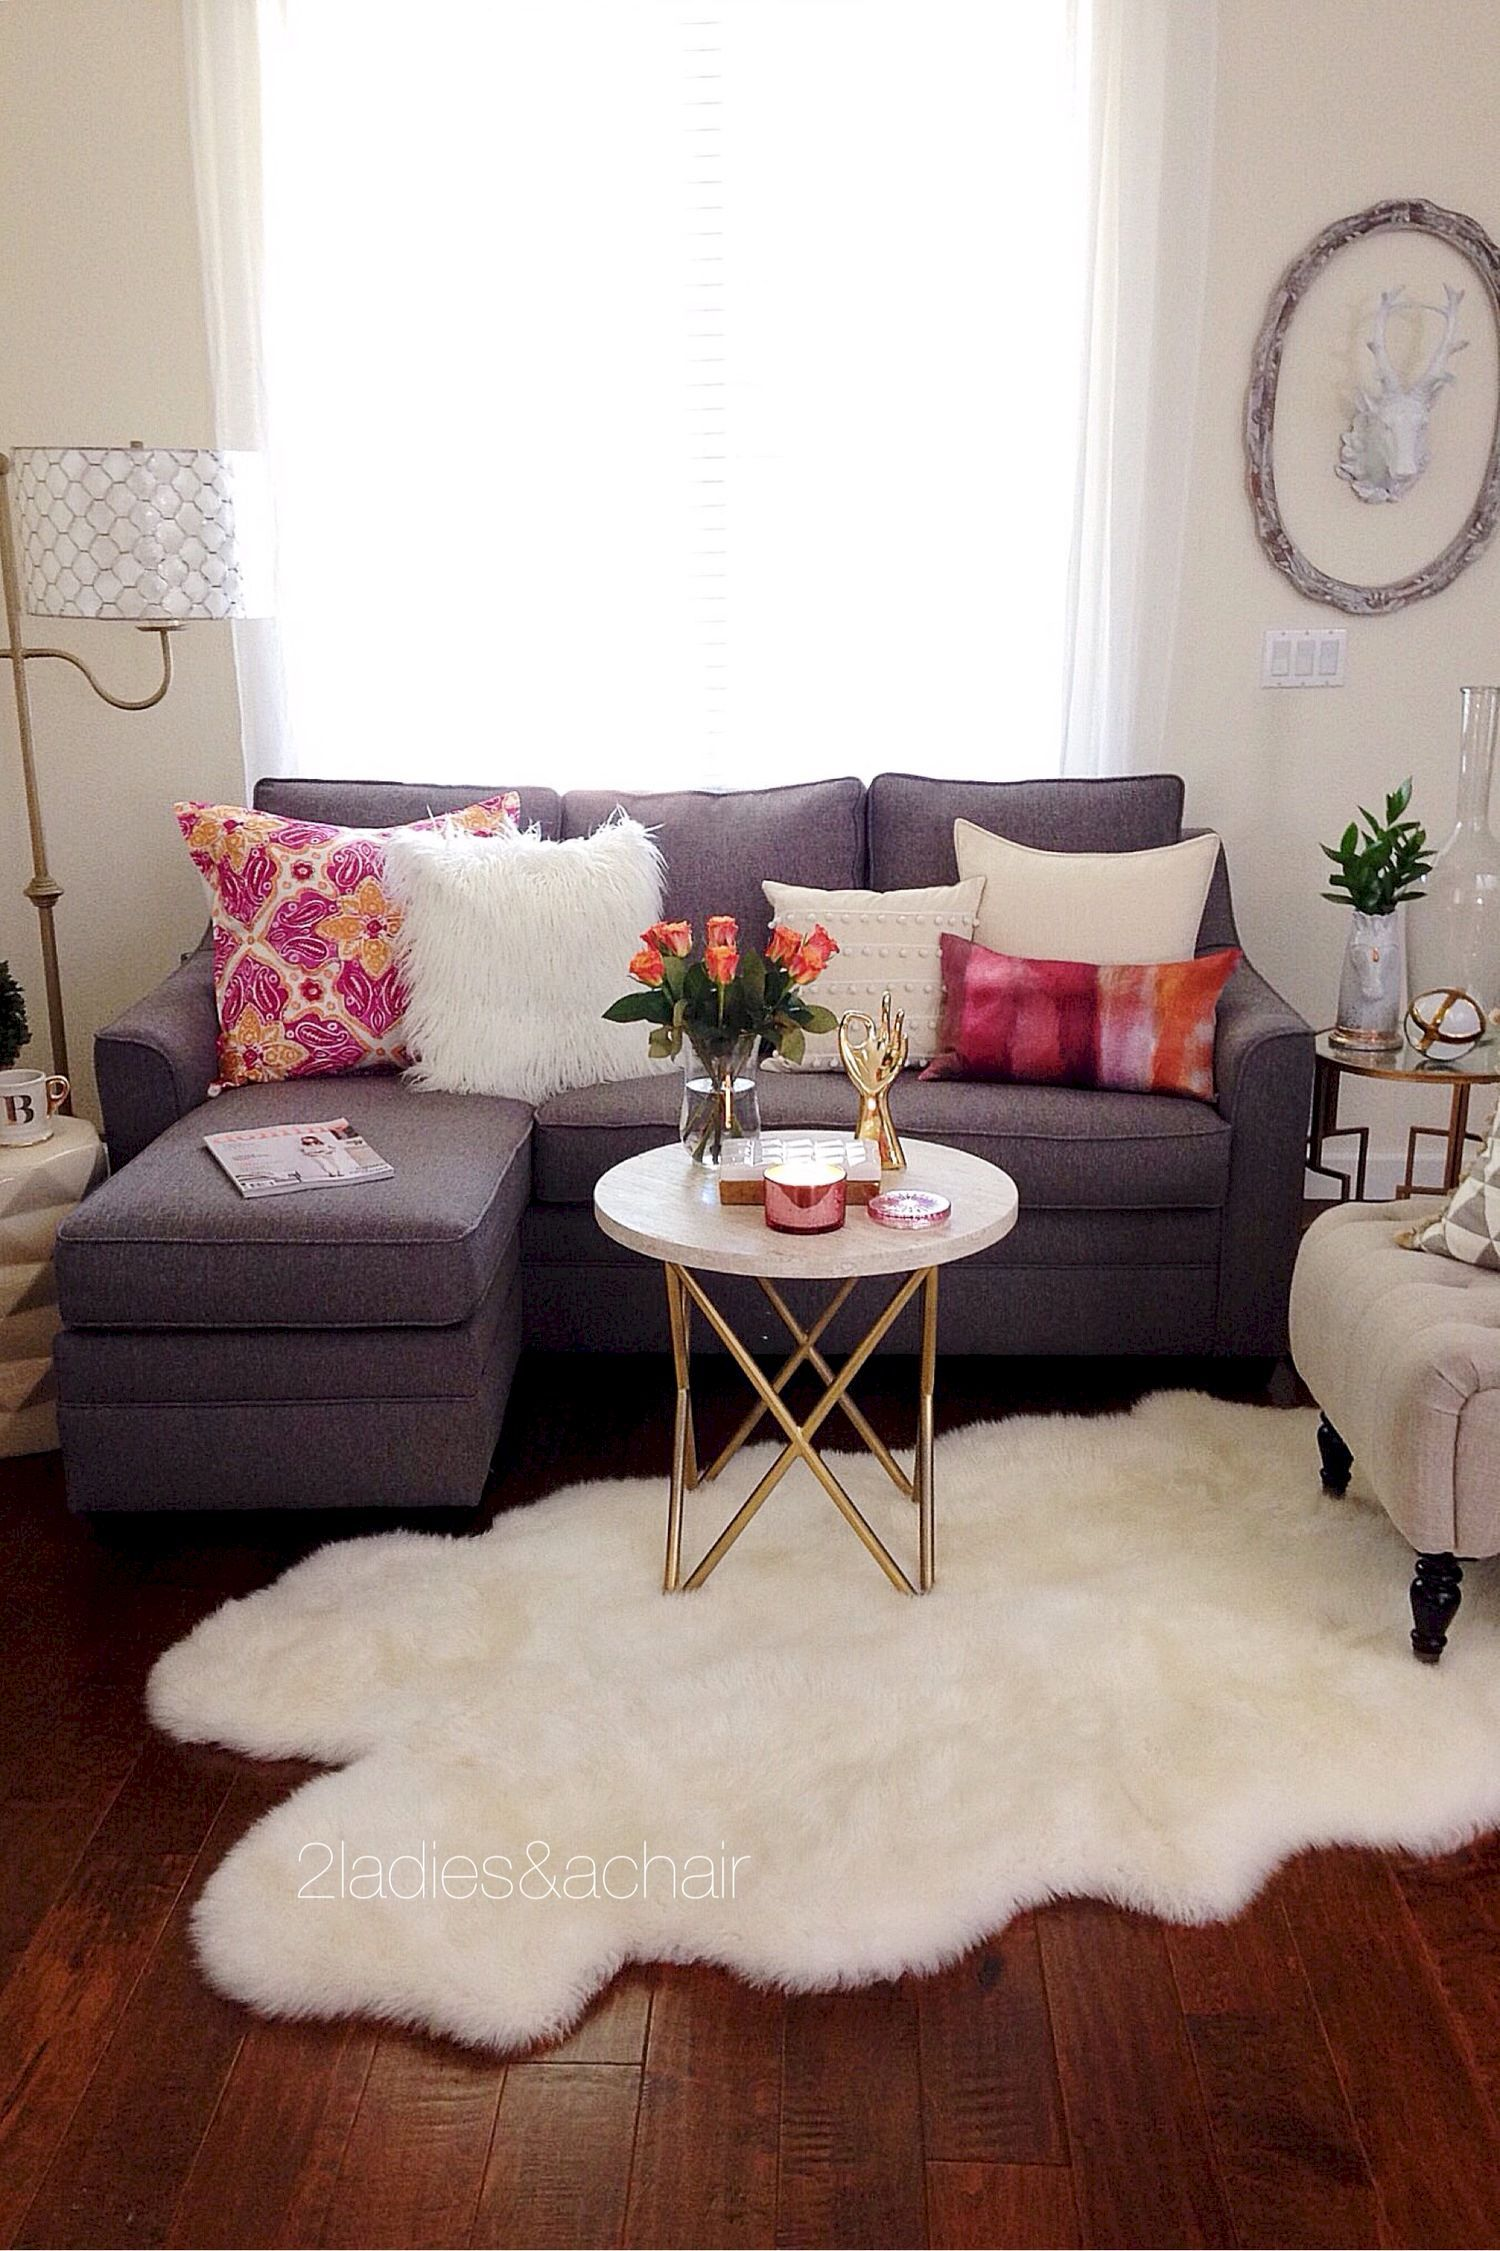 The Best Diy Apartment Small Living Room Ideas On A Budget 159